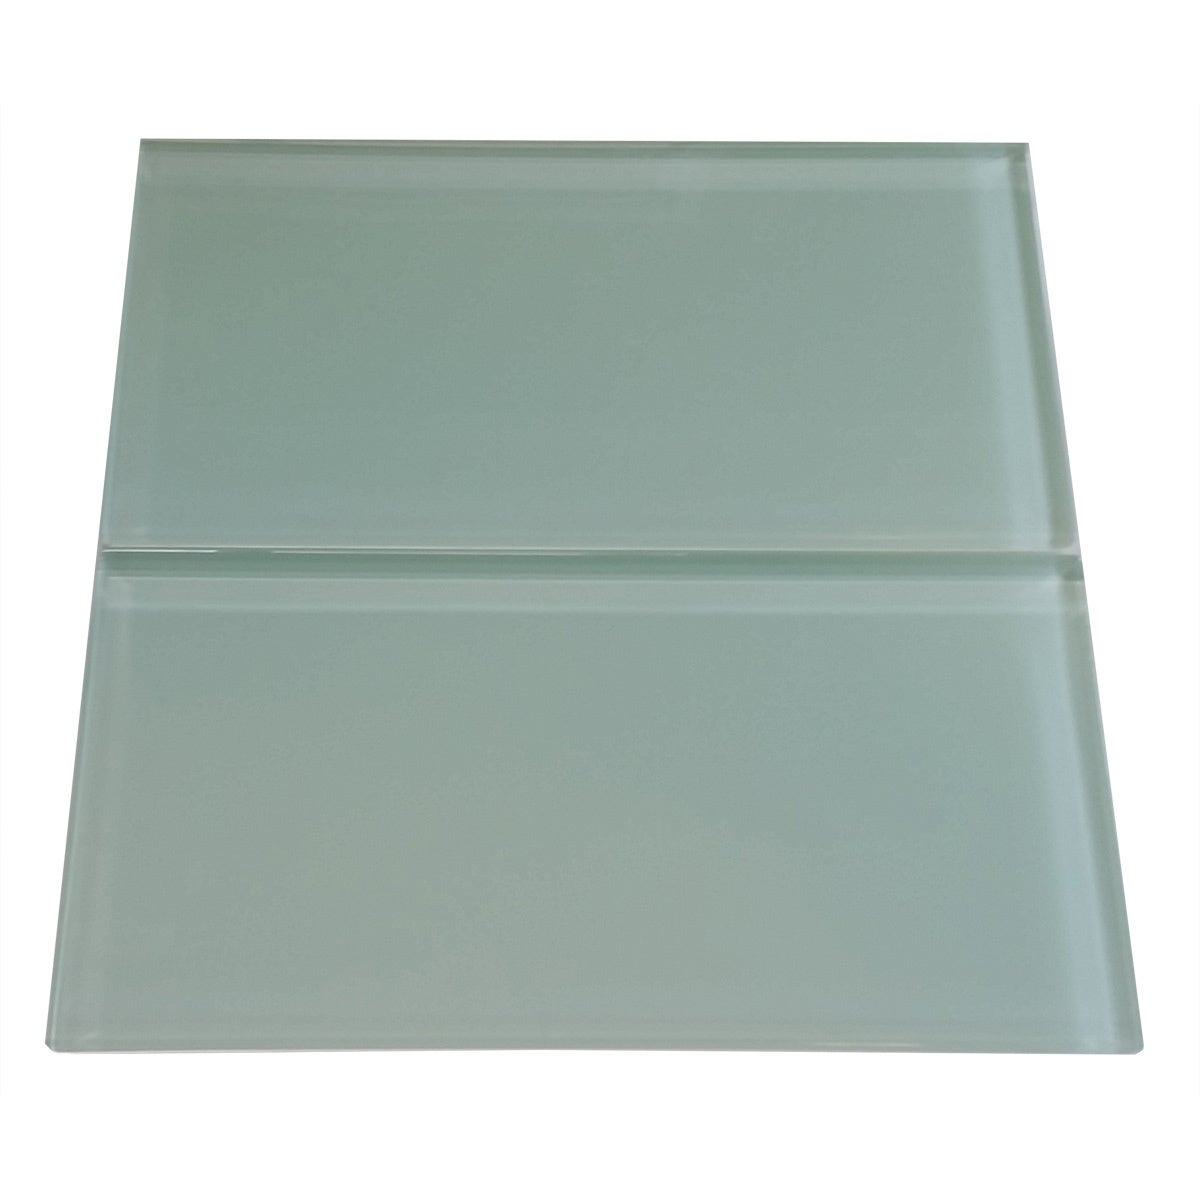 Surf green 6x12 lush glass subway tile free shipping today surf green 6x12 lush glass subway tile free shipping today overstock 18486486 dailygadgetfo Image collections